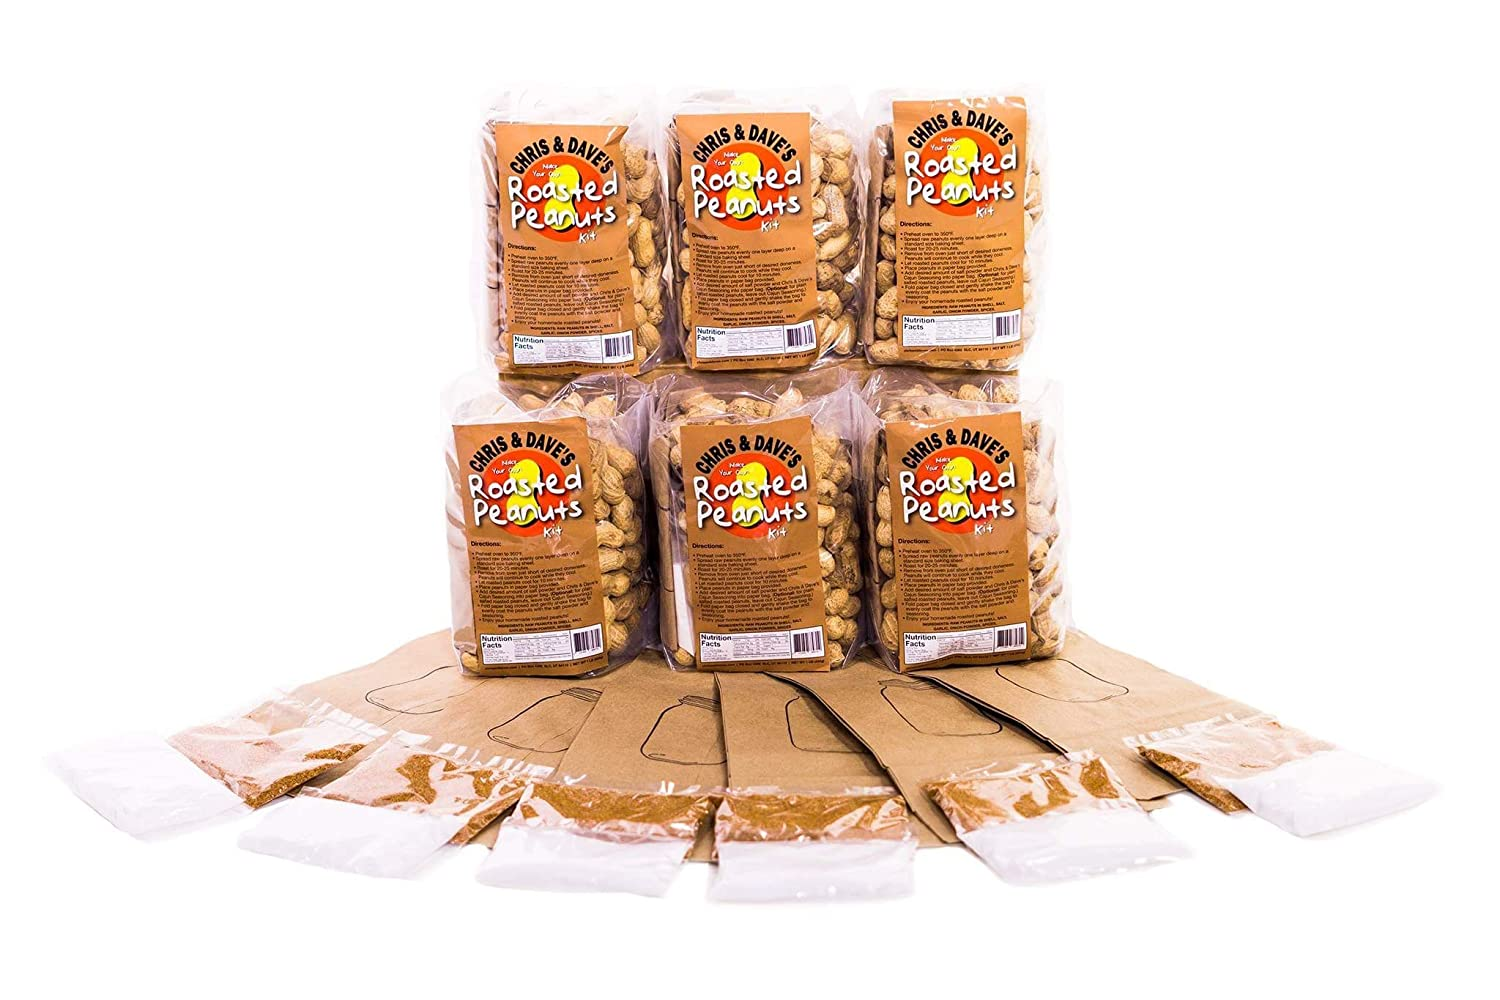 Amazon.com : Make Your Own Roasted Peanuts Kit- 6 Pack : Grocery & Gourmet Food